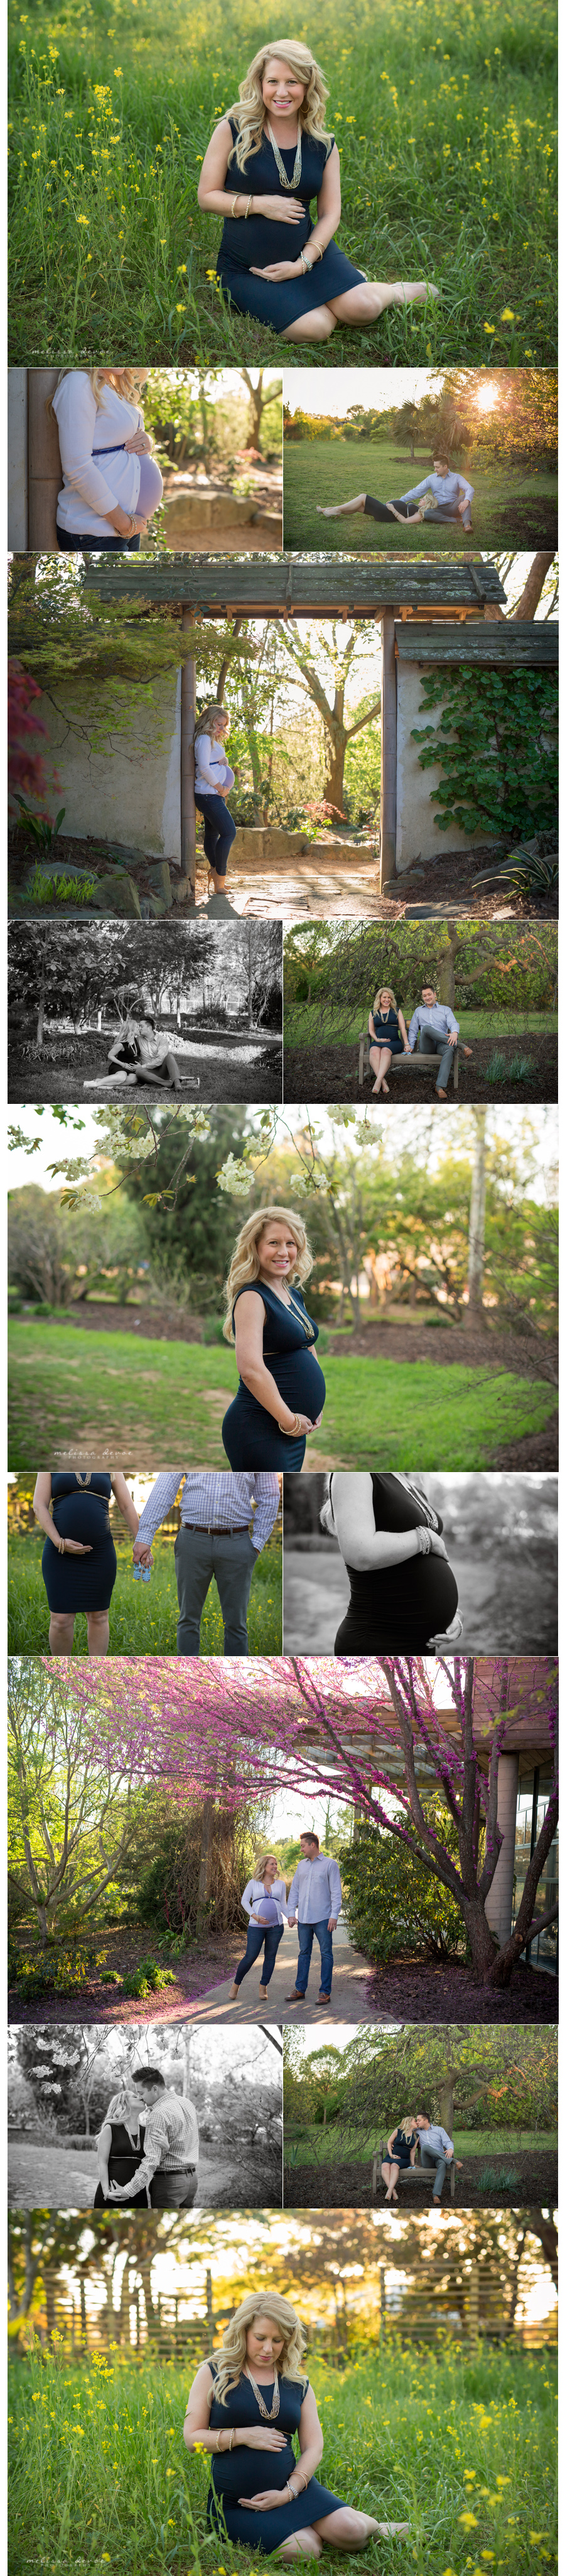 Melissa DeVoe Raleigh Newborn Maternity and Baby Photography